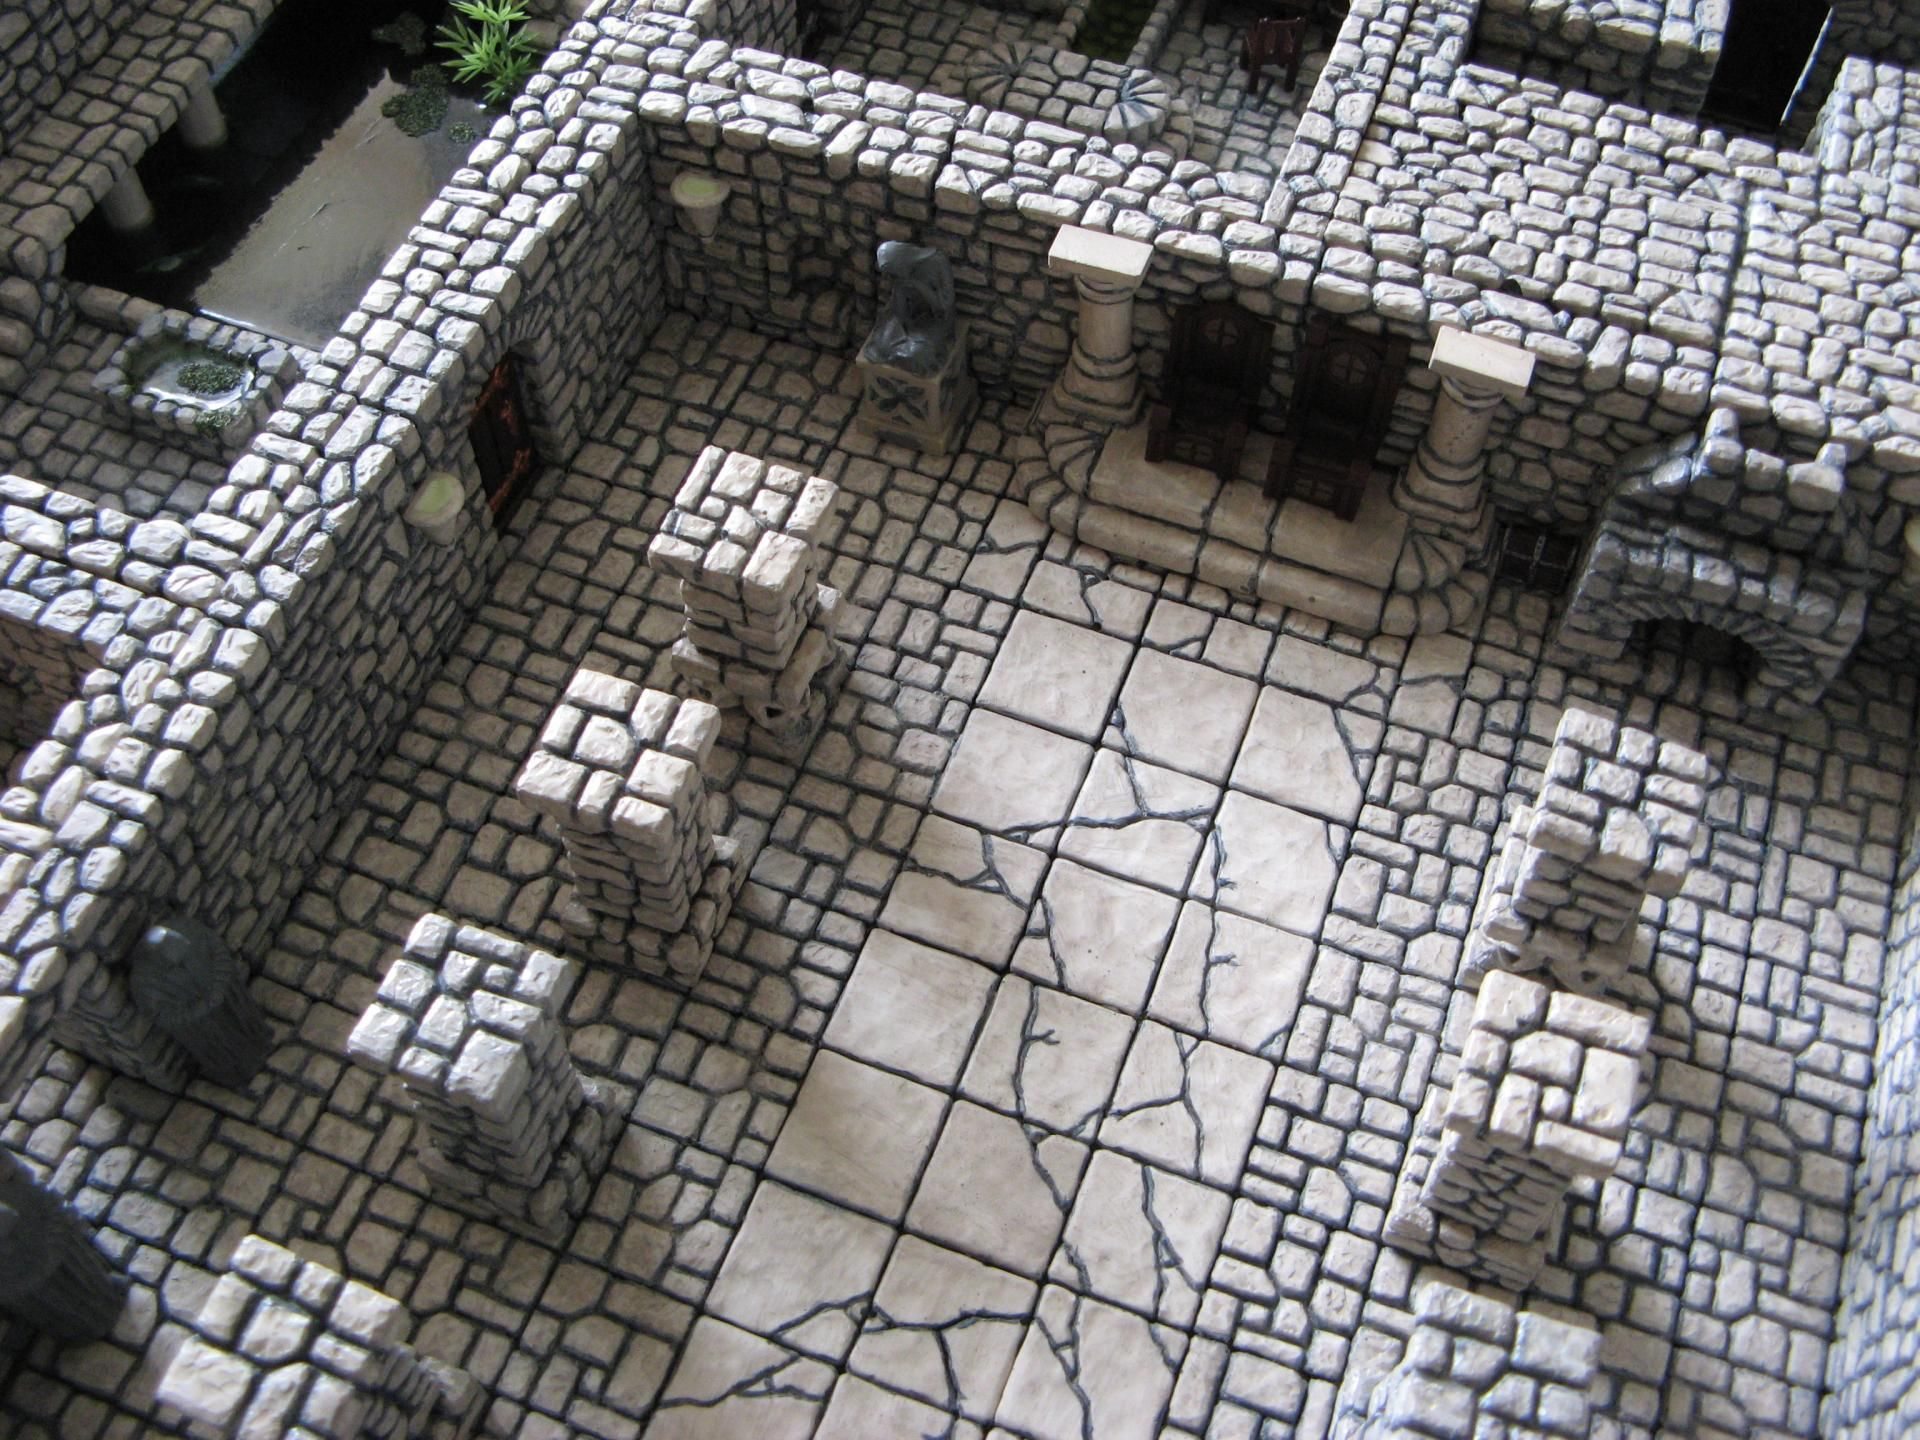 Adjustable dungeon by Bloodwych